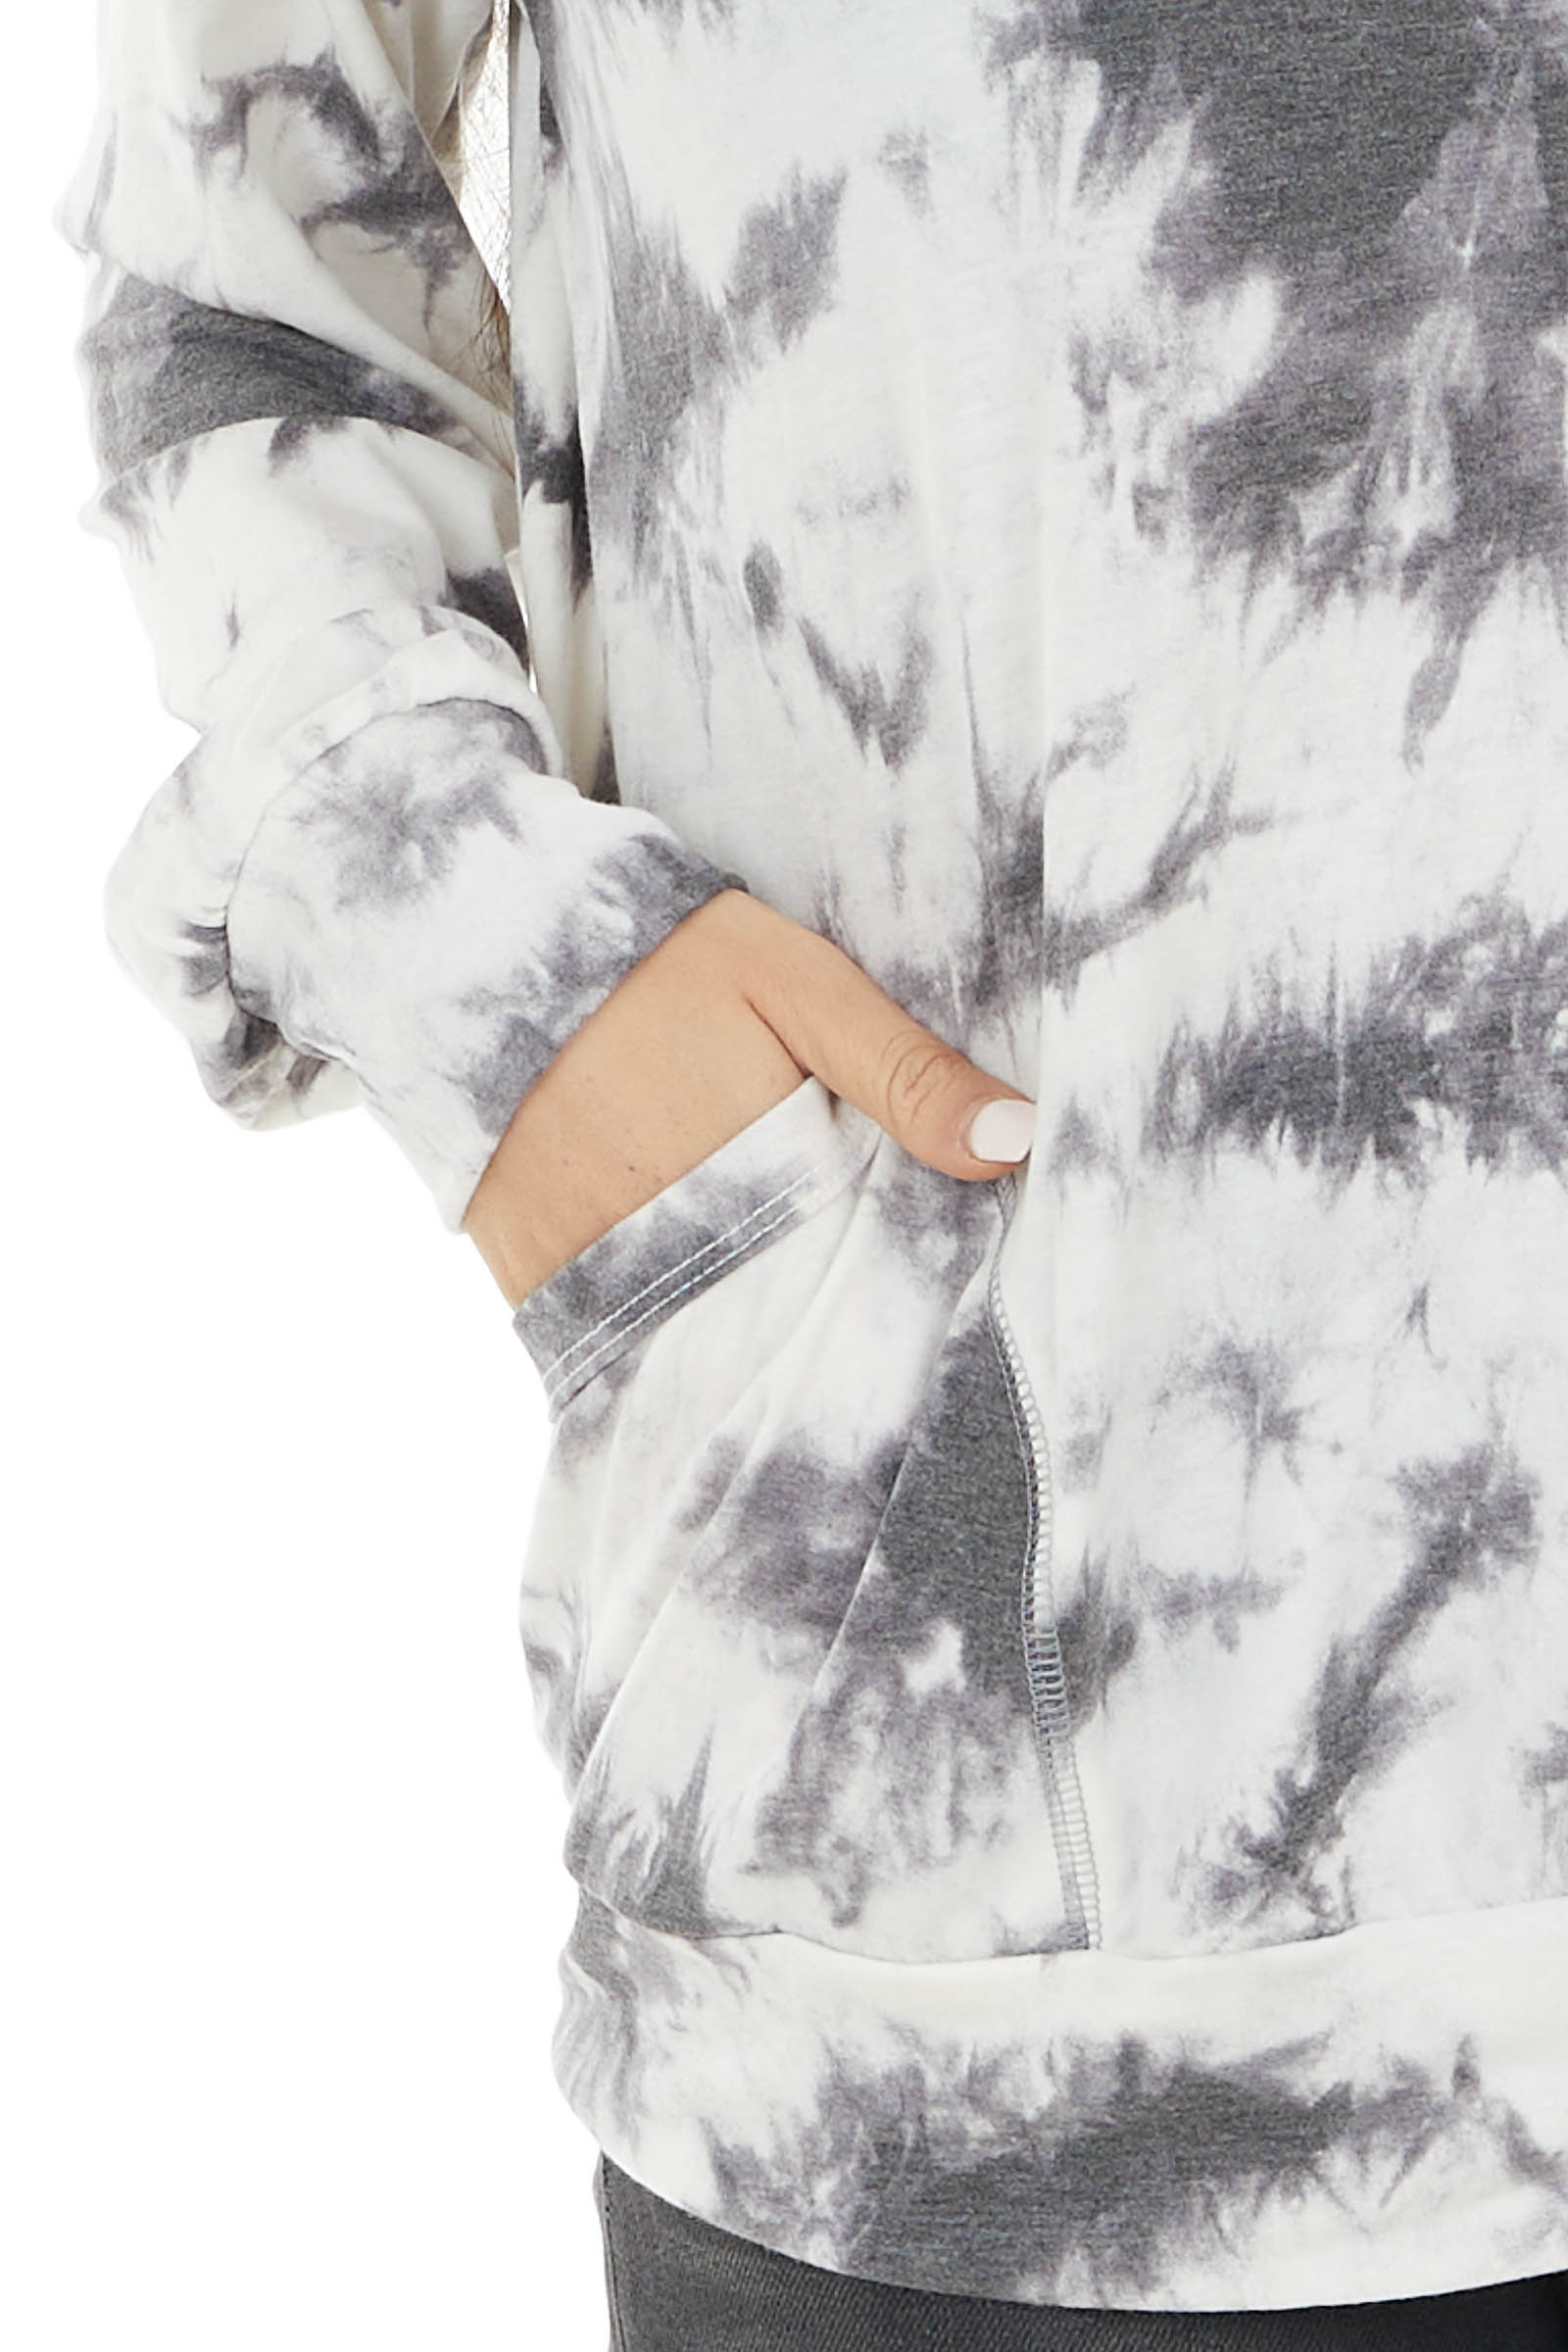 Charcoal Tie Dye Long Sleeve Hoodie with Two Pockets